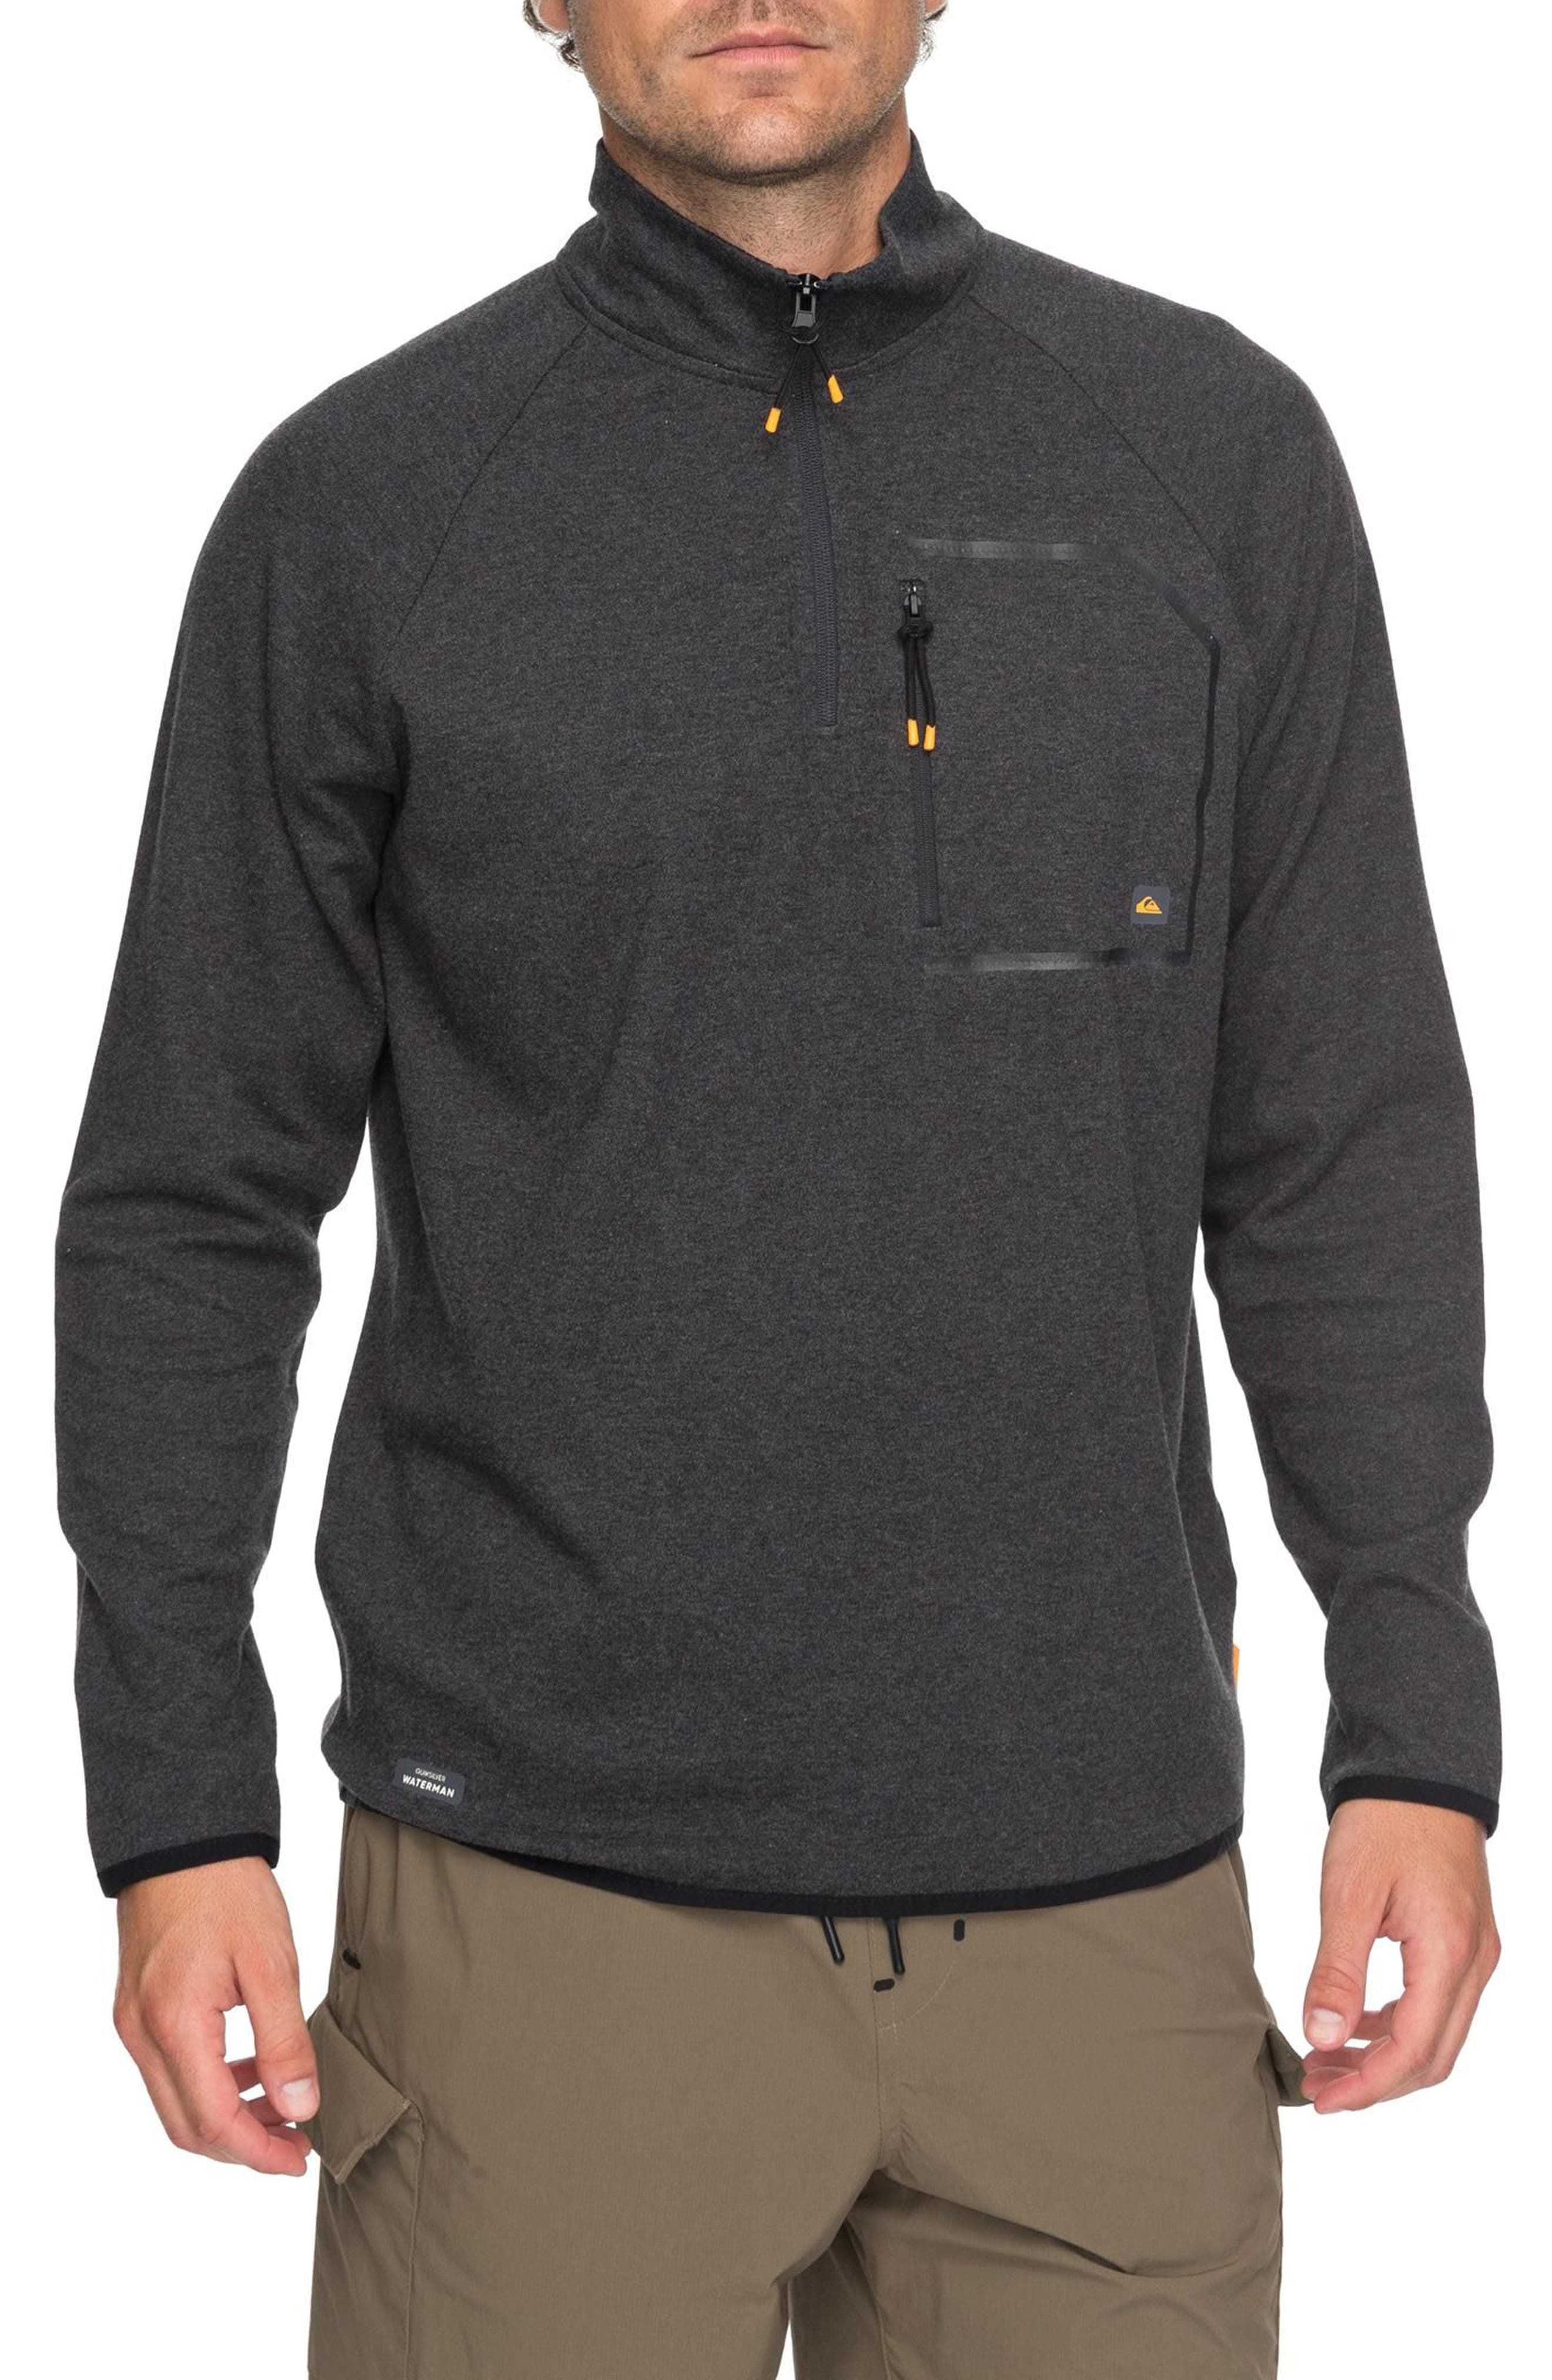 Technical Sweatshirt,                             Main thumbnail 1, color,                             Charcoal Heather